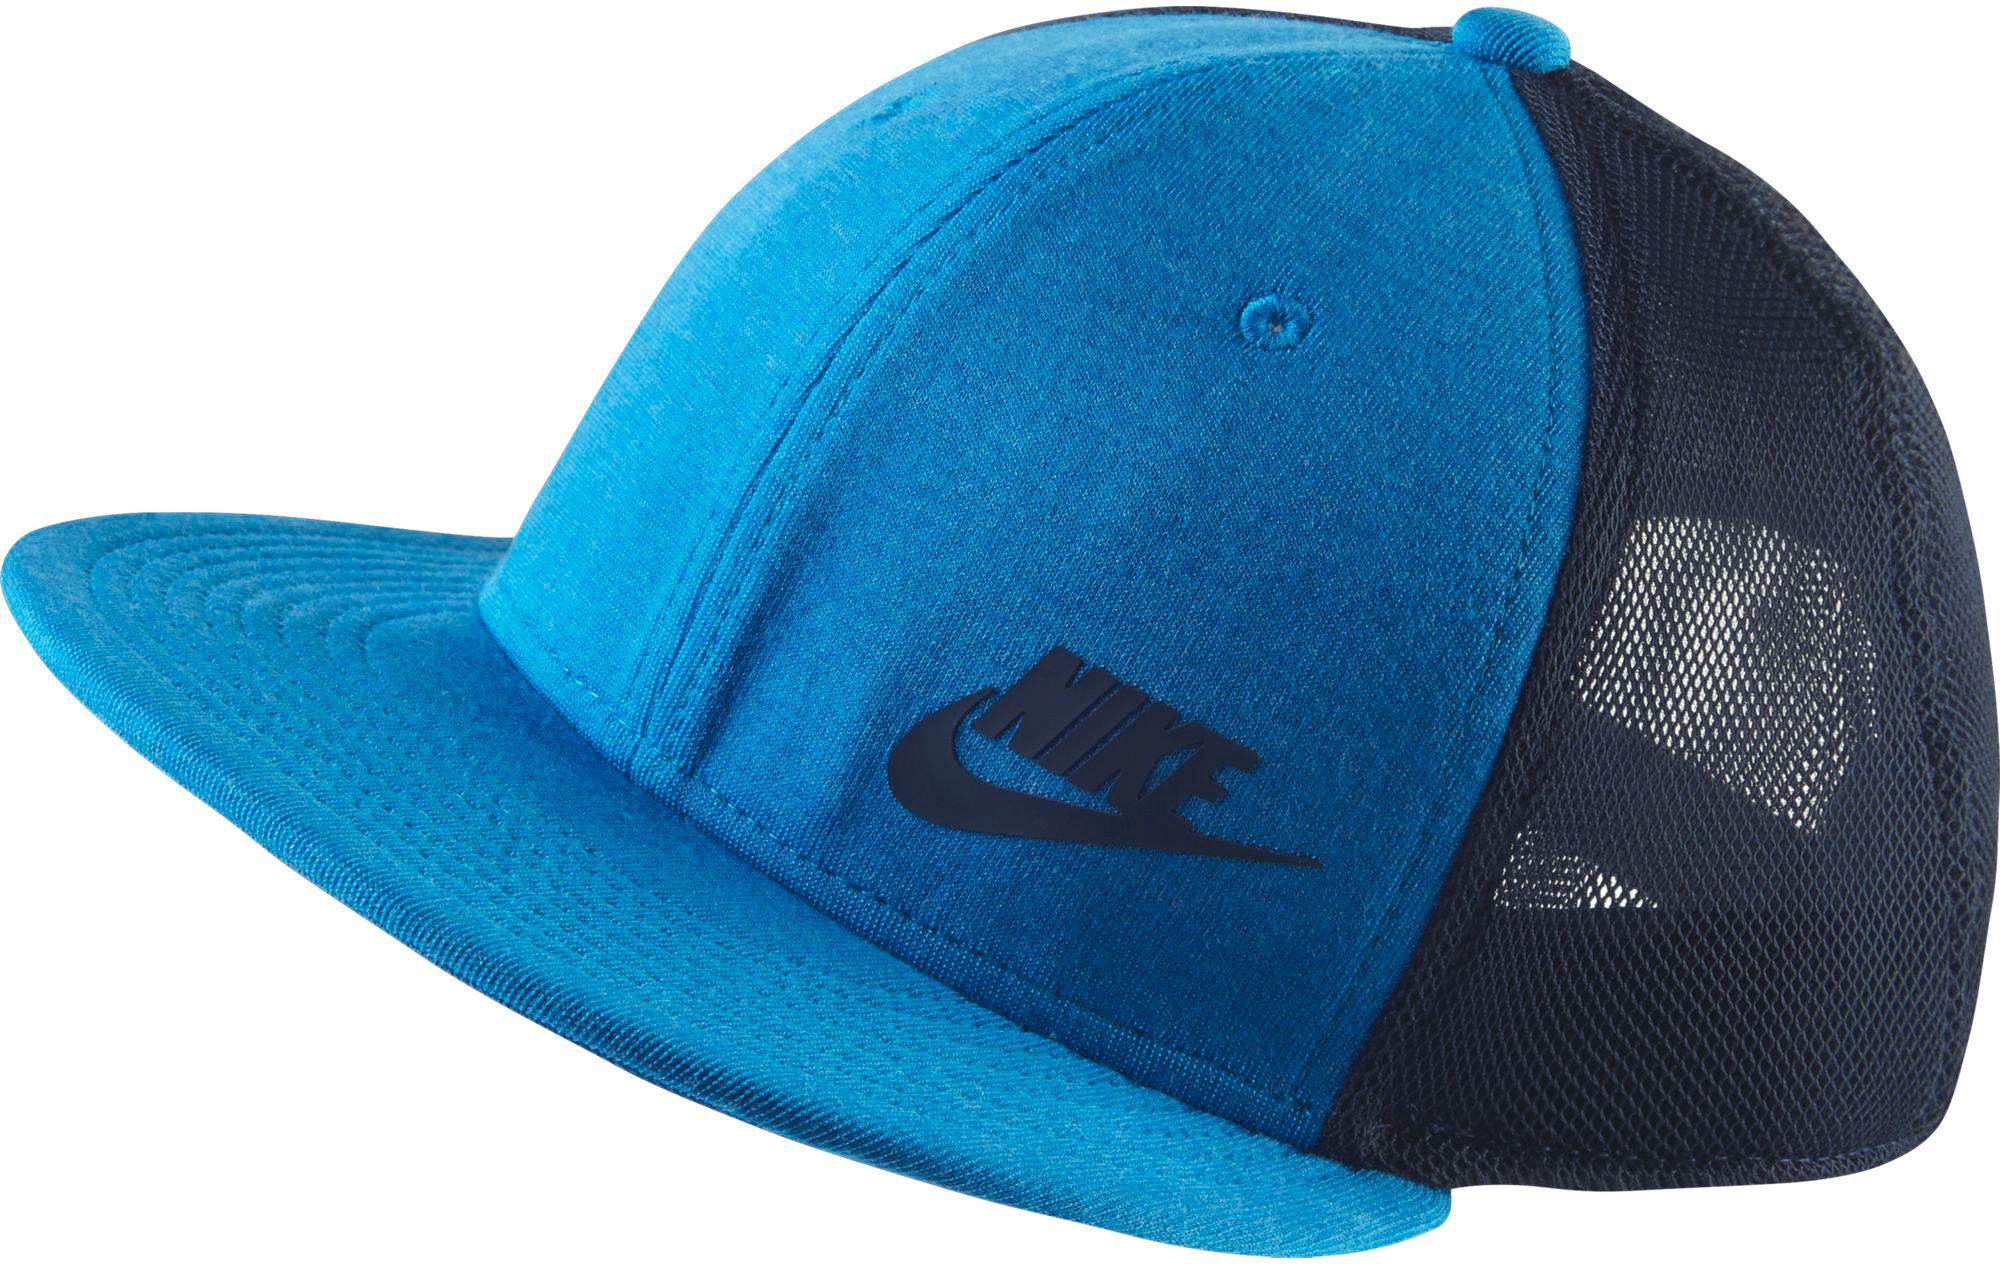 Nike Men's True Tech Pack Adjustable Snapback Hat. 0:00. 0:00 / 0:00.  noImageFound ???